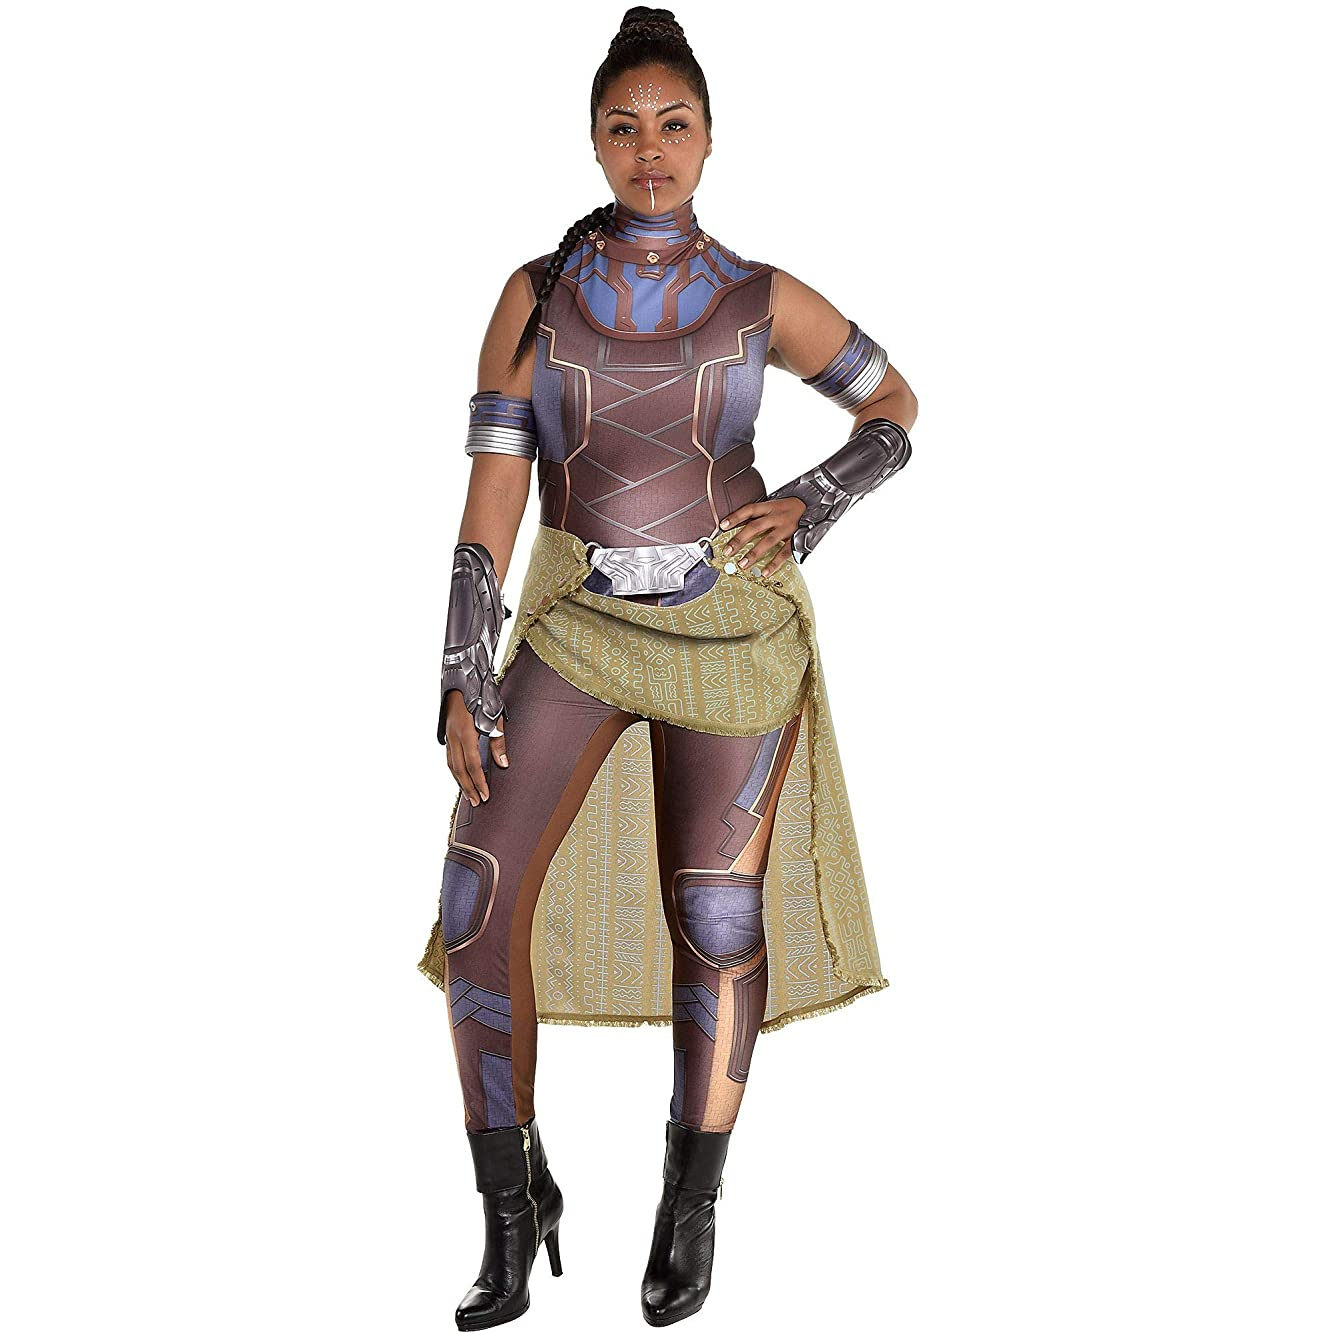 SUIT YOURSELF Shuri Halloween Costume for Women, Black Panther, Plus Size, Includes Accessories